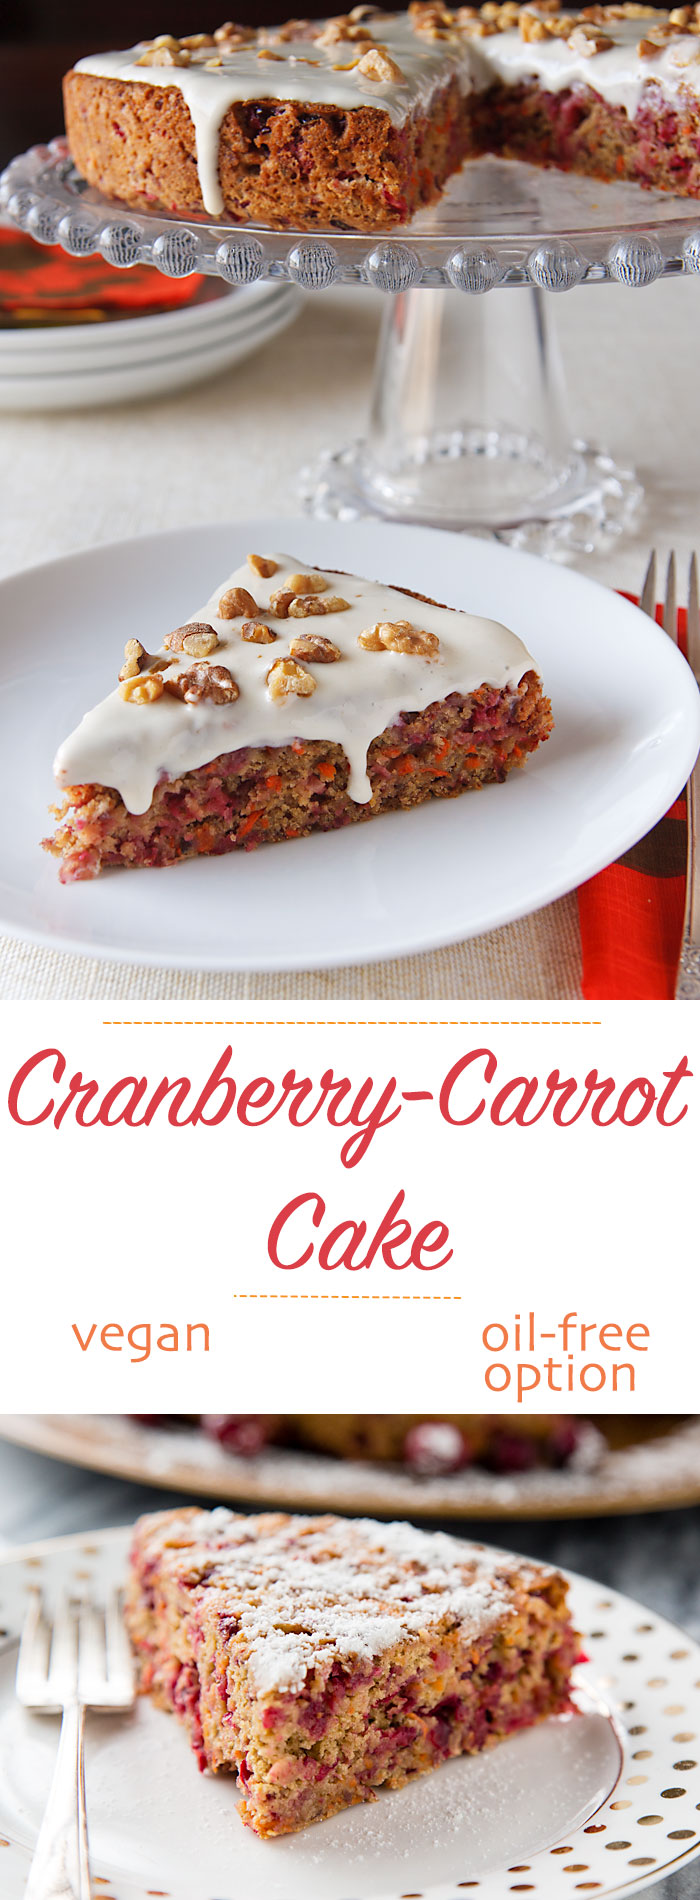 Cranberries add a tangy, fresh flavor while carrots provide sweetness in this colorful, vegan Cranberry-Carrot Cake. Perfect for Thanksgiving or Christmas.